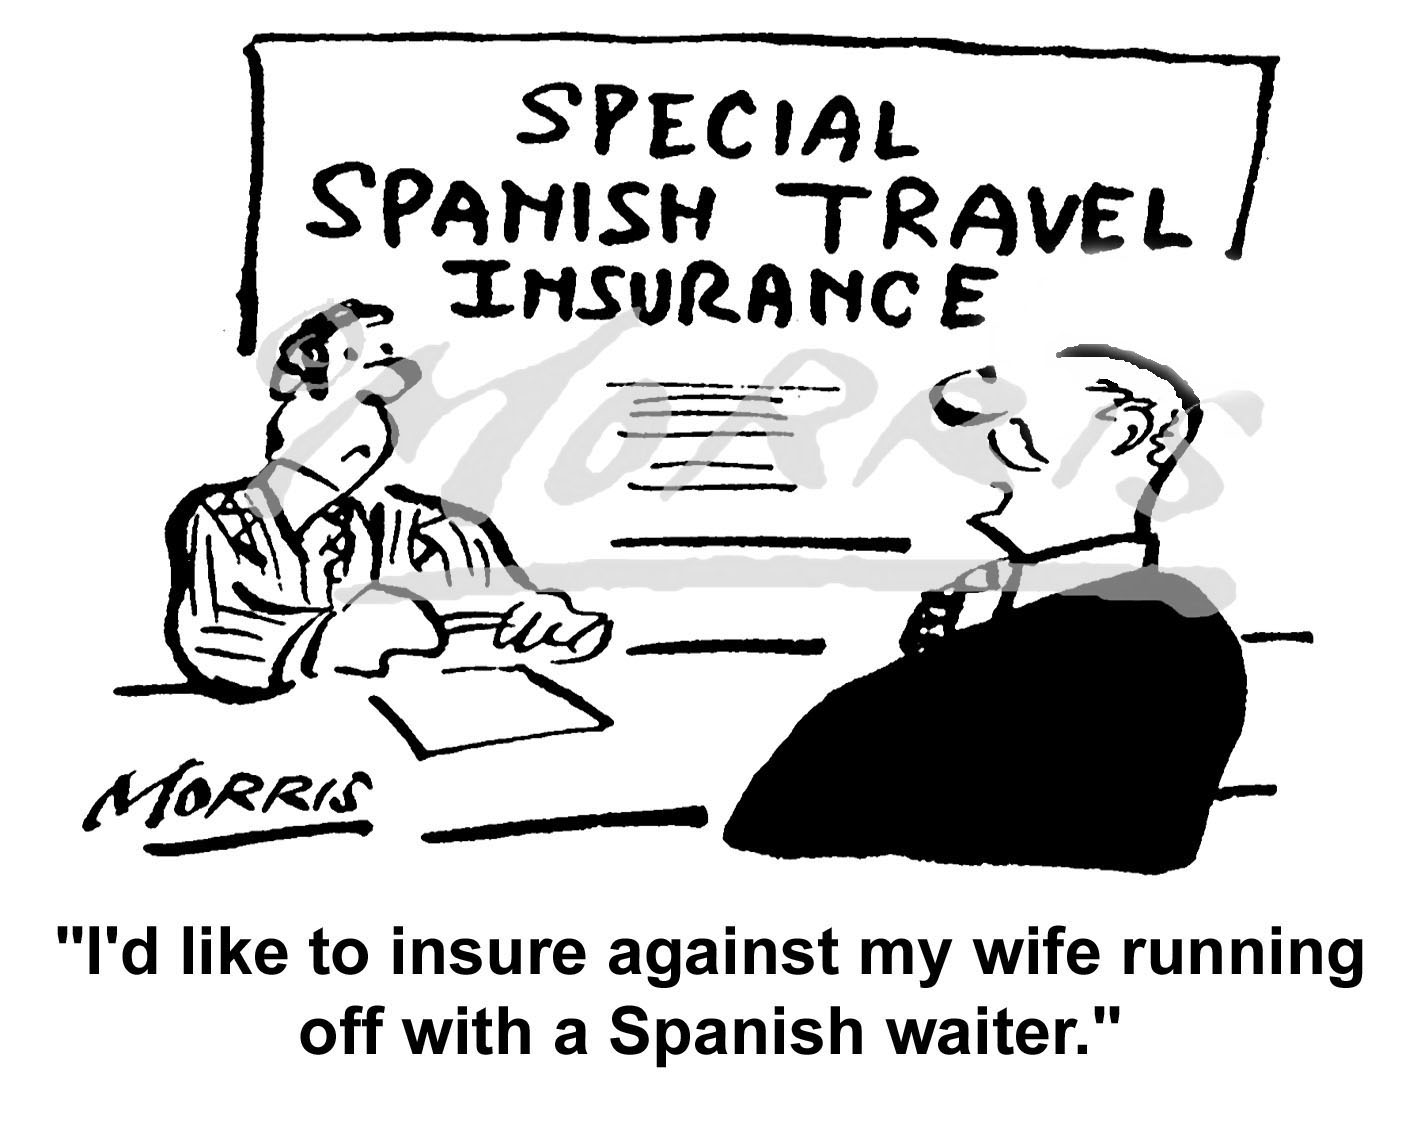 Travel insurance cartoon Ref: 0301bw